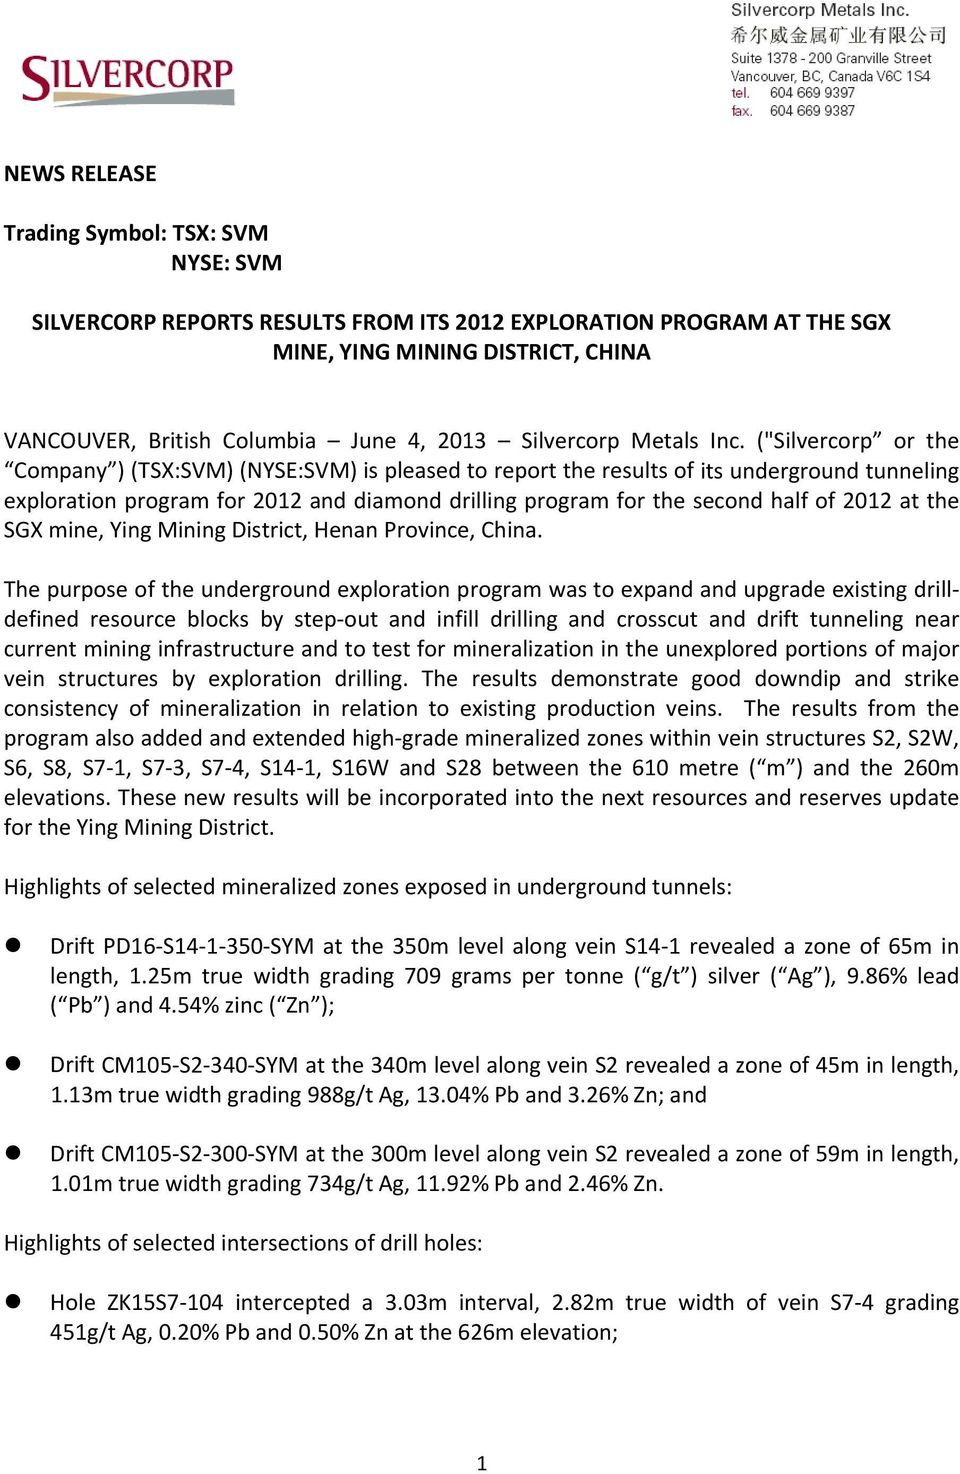 "(""Silvercorp or the Company ) (TSX:SVM) (NYSE:SVM) is pleased to report the results of its underground tunneling exploration program for 2012 and diamond drilling program for the second half of 2012"